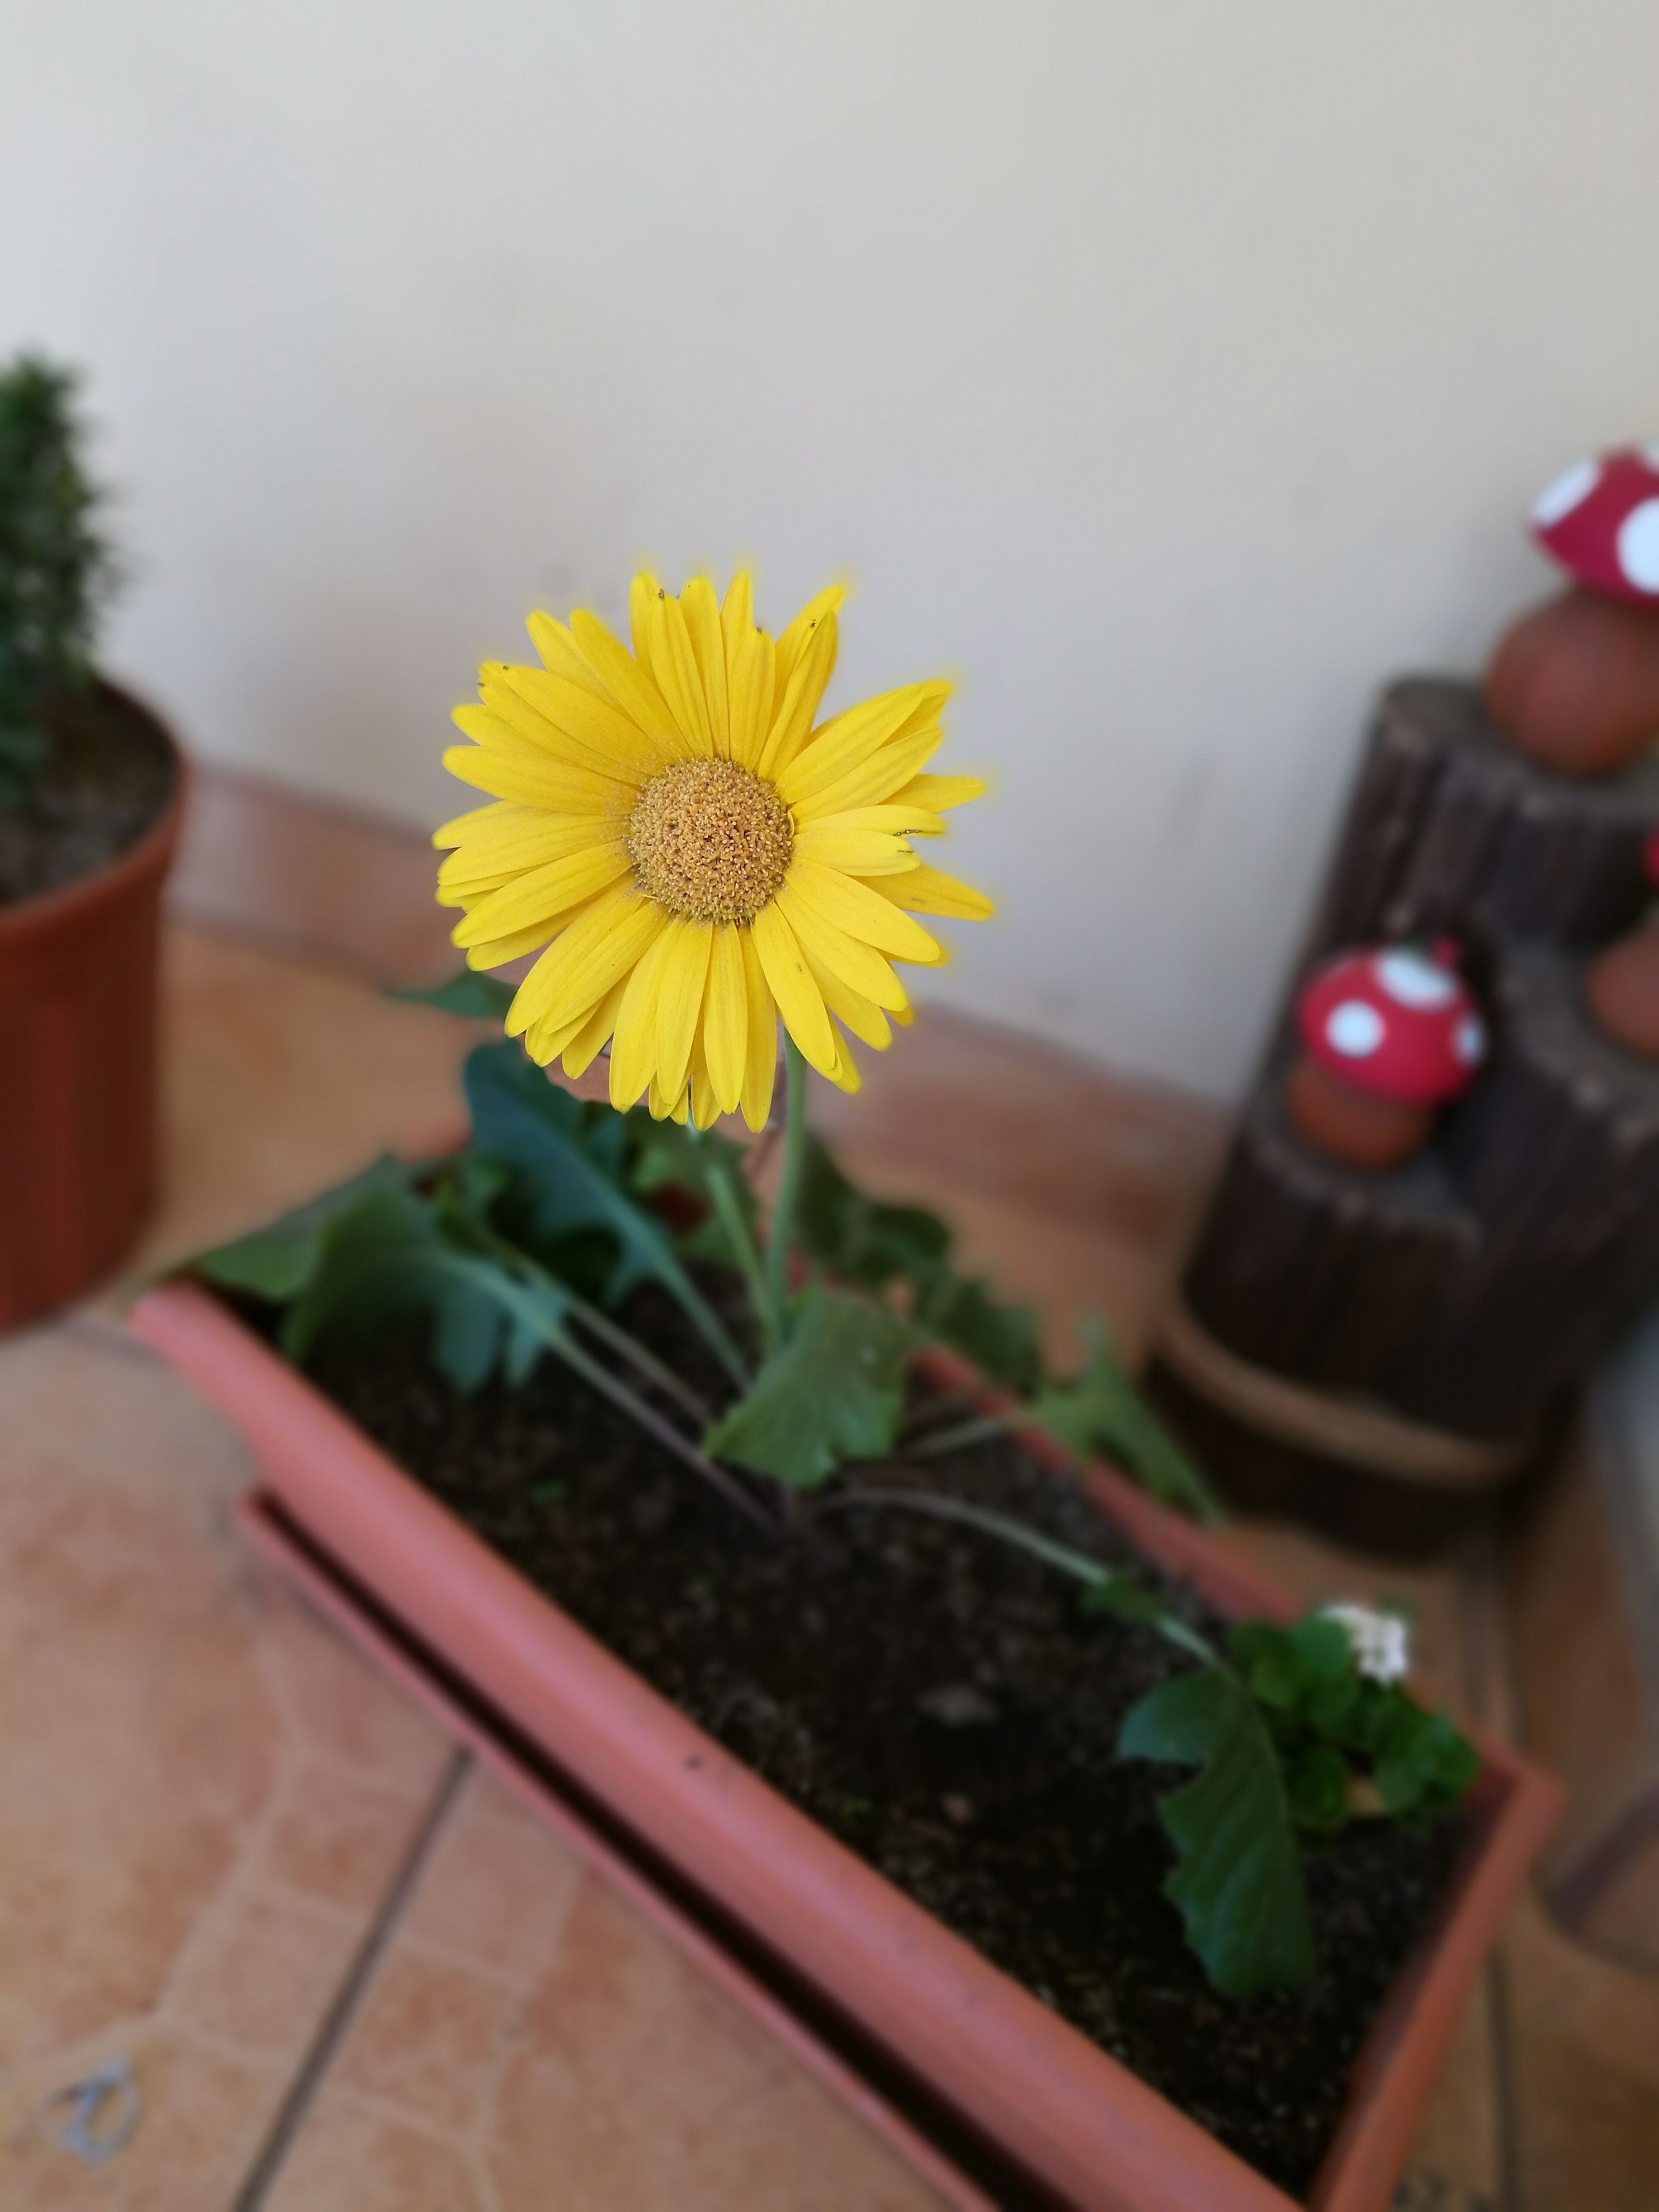 flower, plant, indoors, nature, home interior, freshness, table, fragility, yellow, no people, growth, beauty in nature, close-up, flower head, day